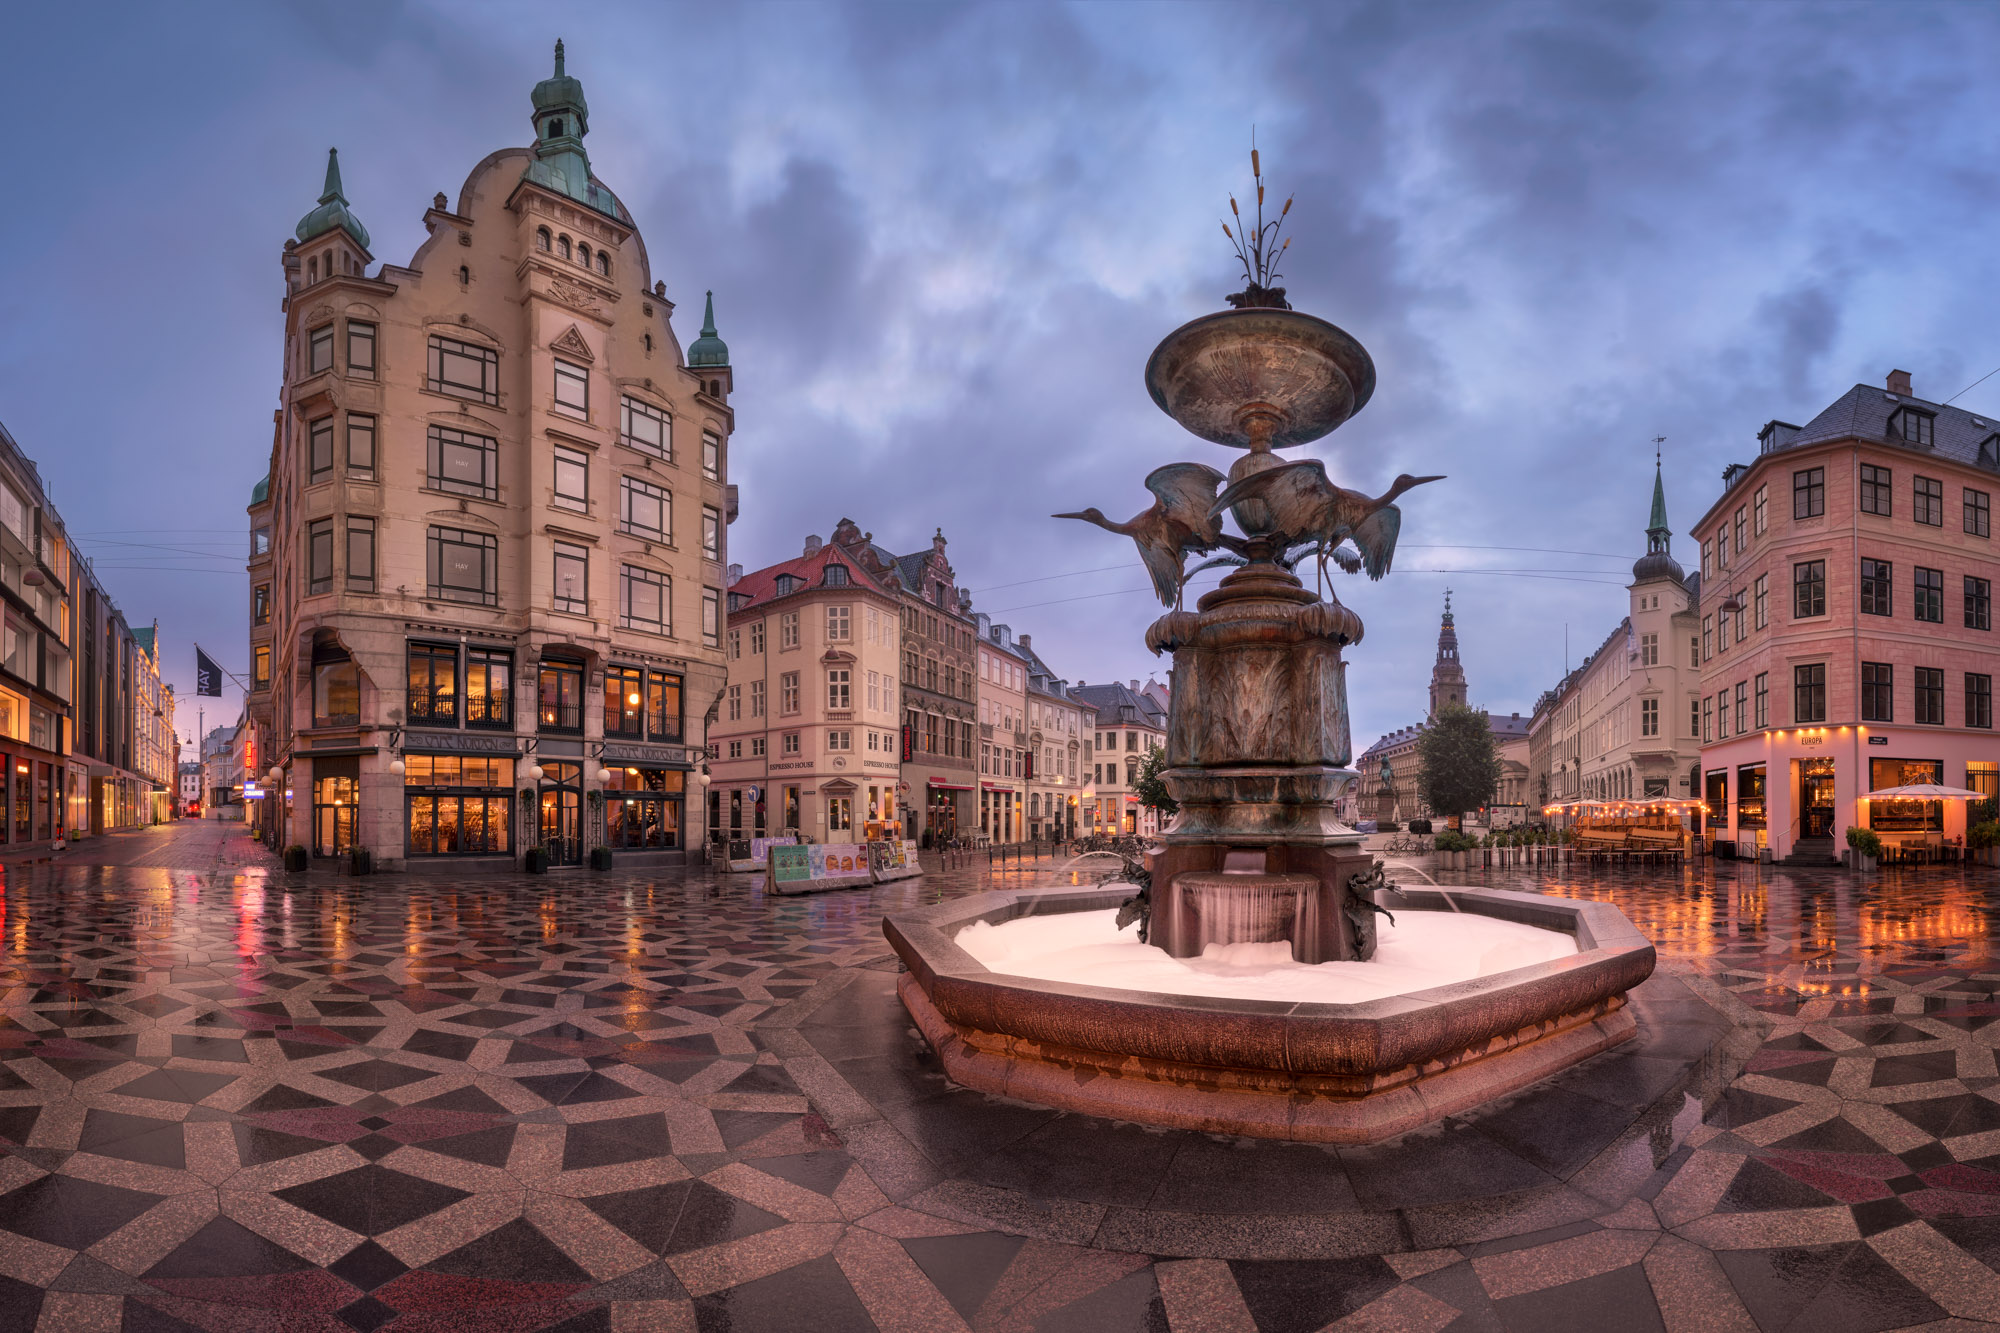 Panorama of Amagertorv Square and Stork Fountain, Copenhagen